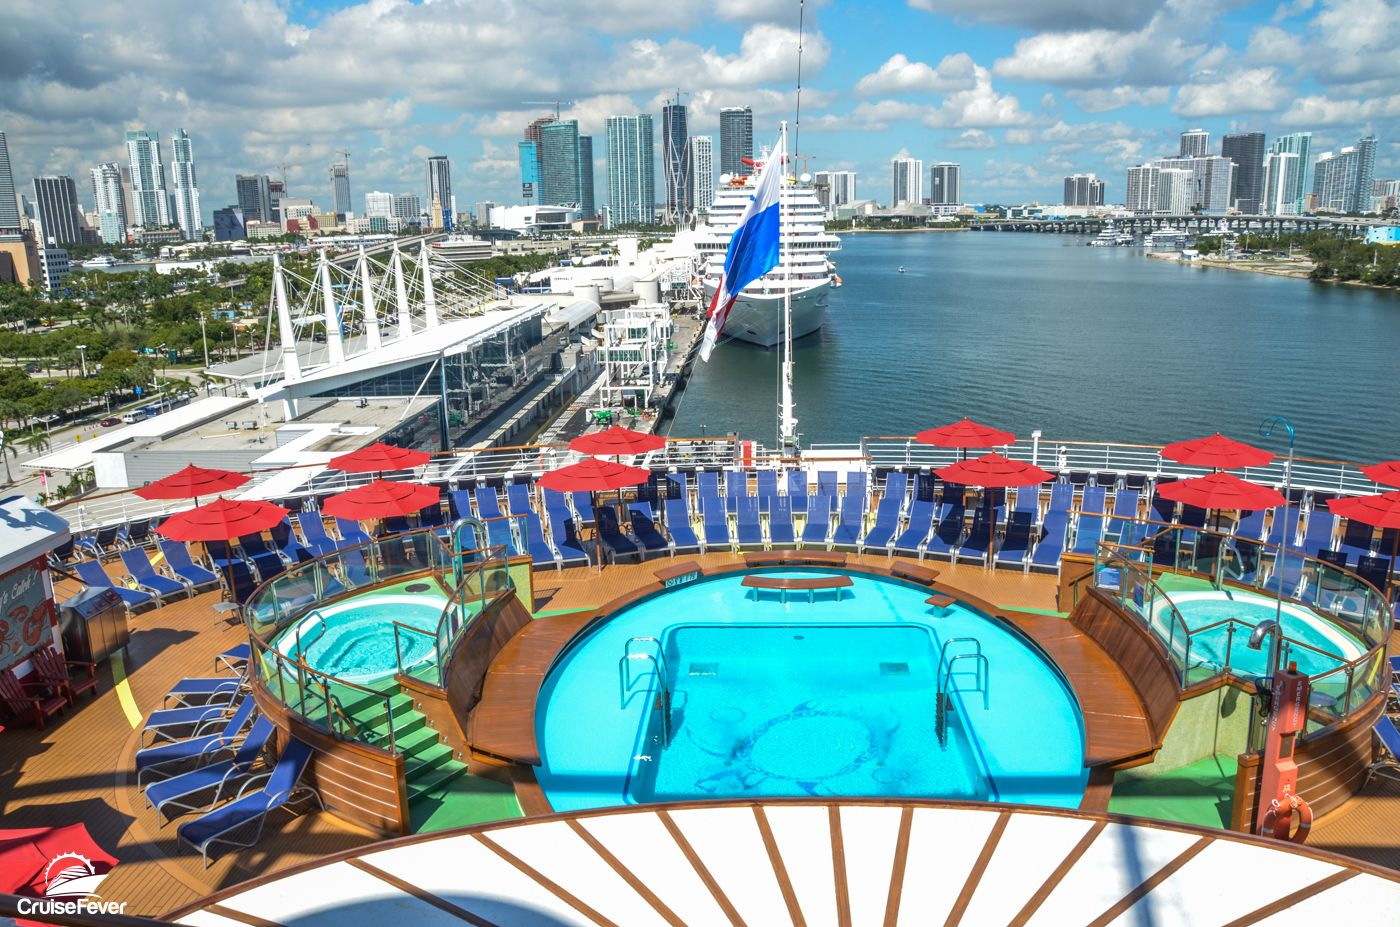 How To Get From Miami Airport To Royal Caribbean Port